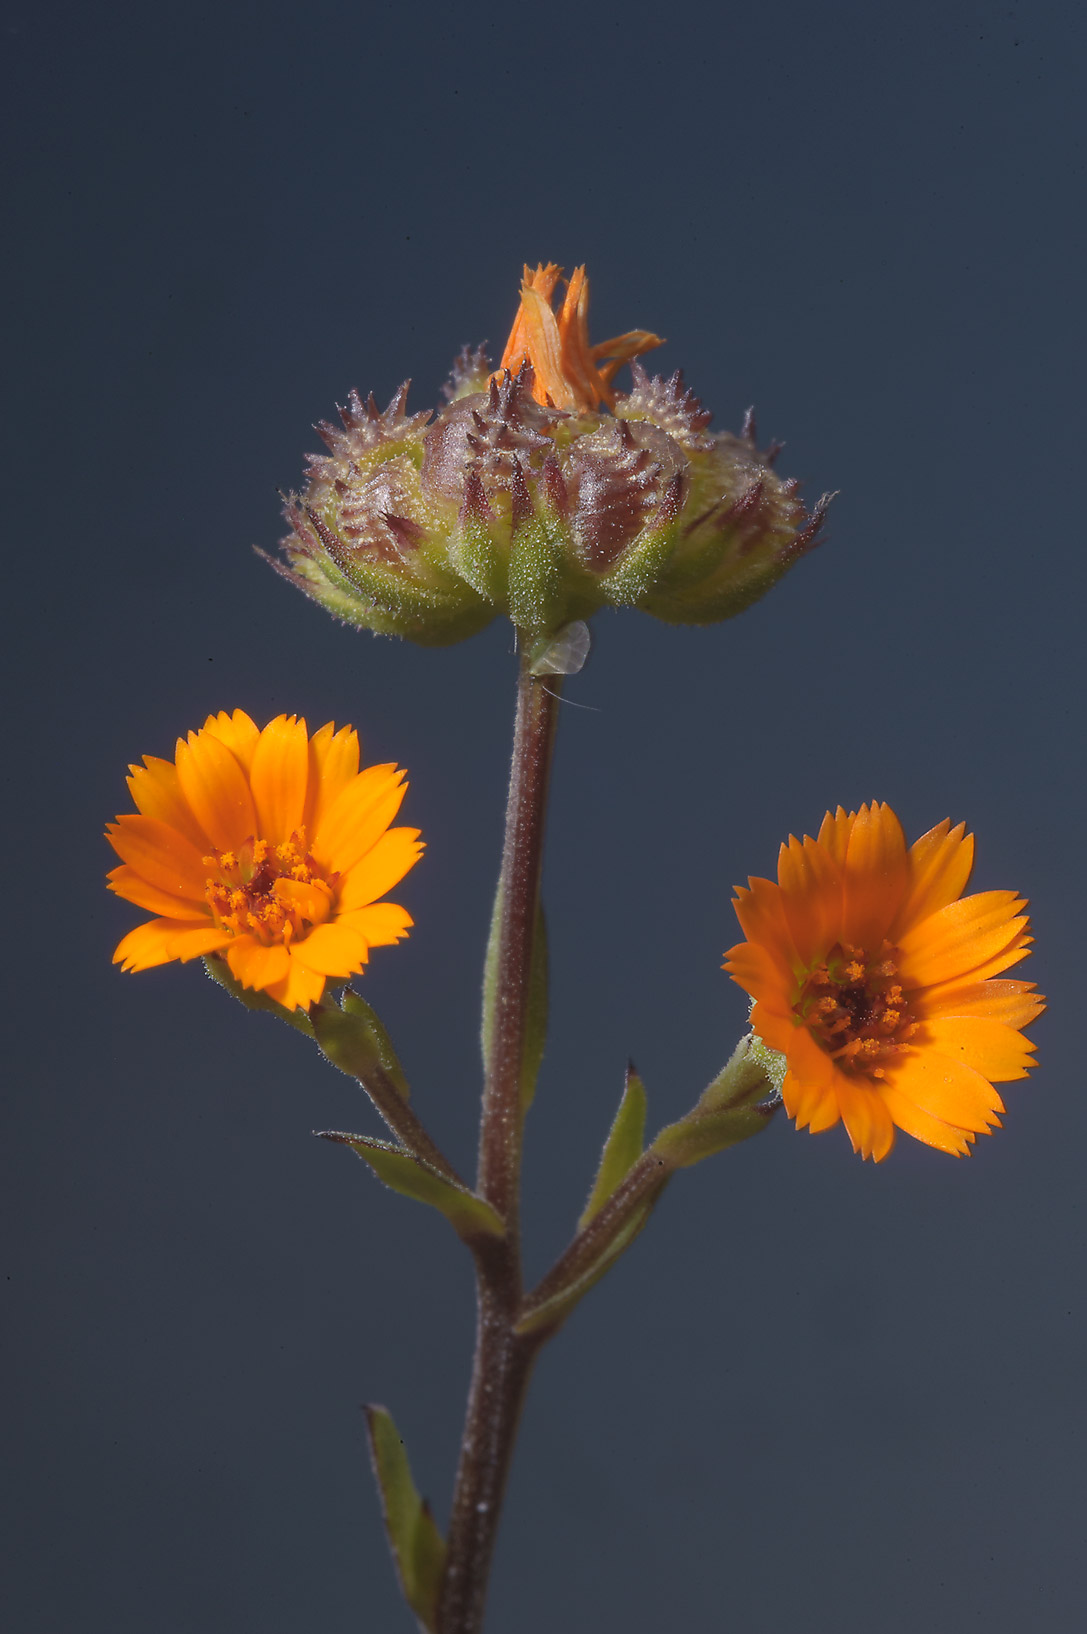 Flowers of Field Marigold (Calendula arvensis...farms area, in north-western Qatar